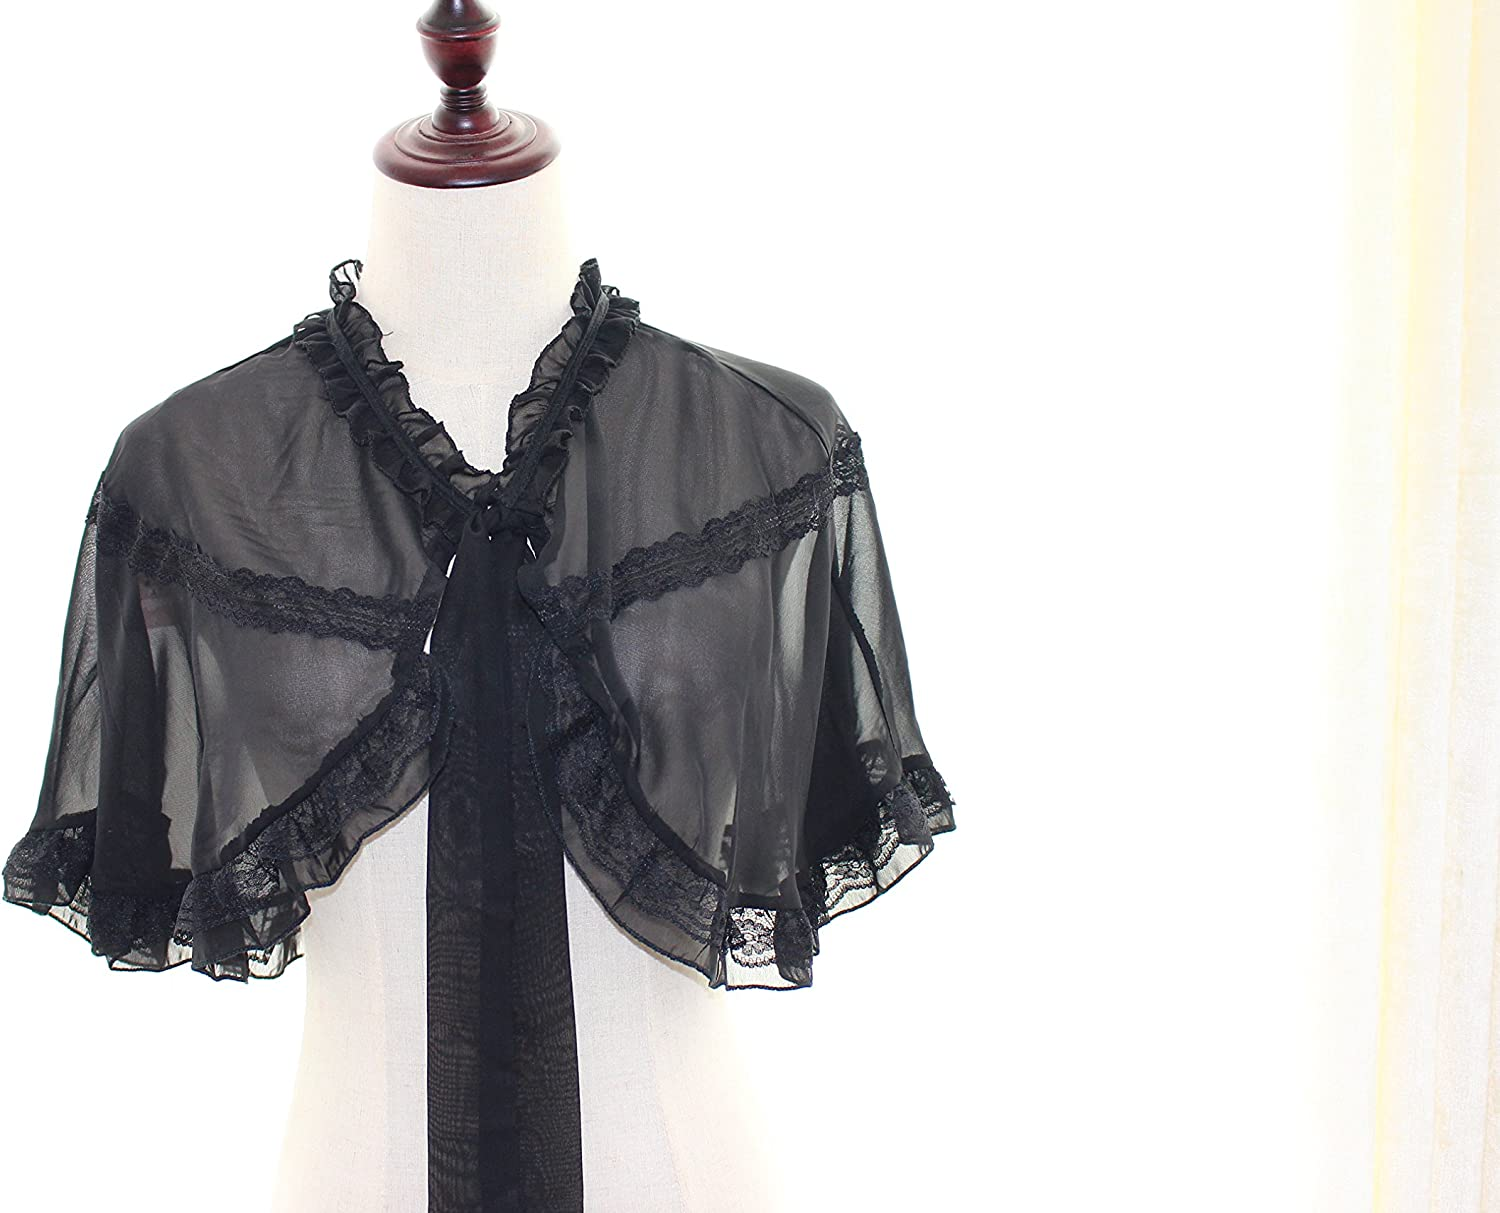 MAYSONG Chiffon Cape Overall from Noble Lace Collar Steampunk Victorian Costume